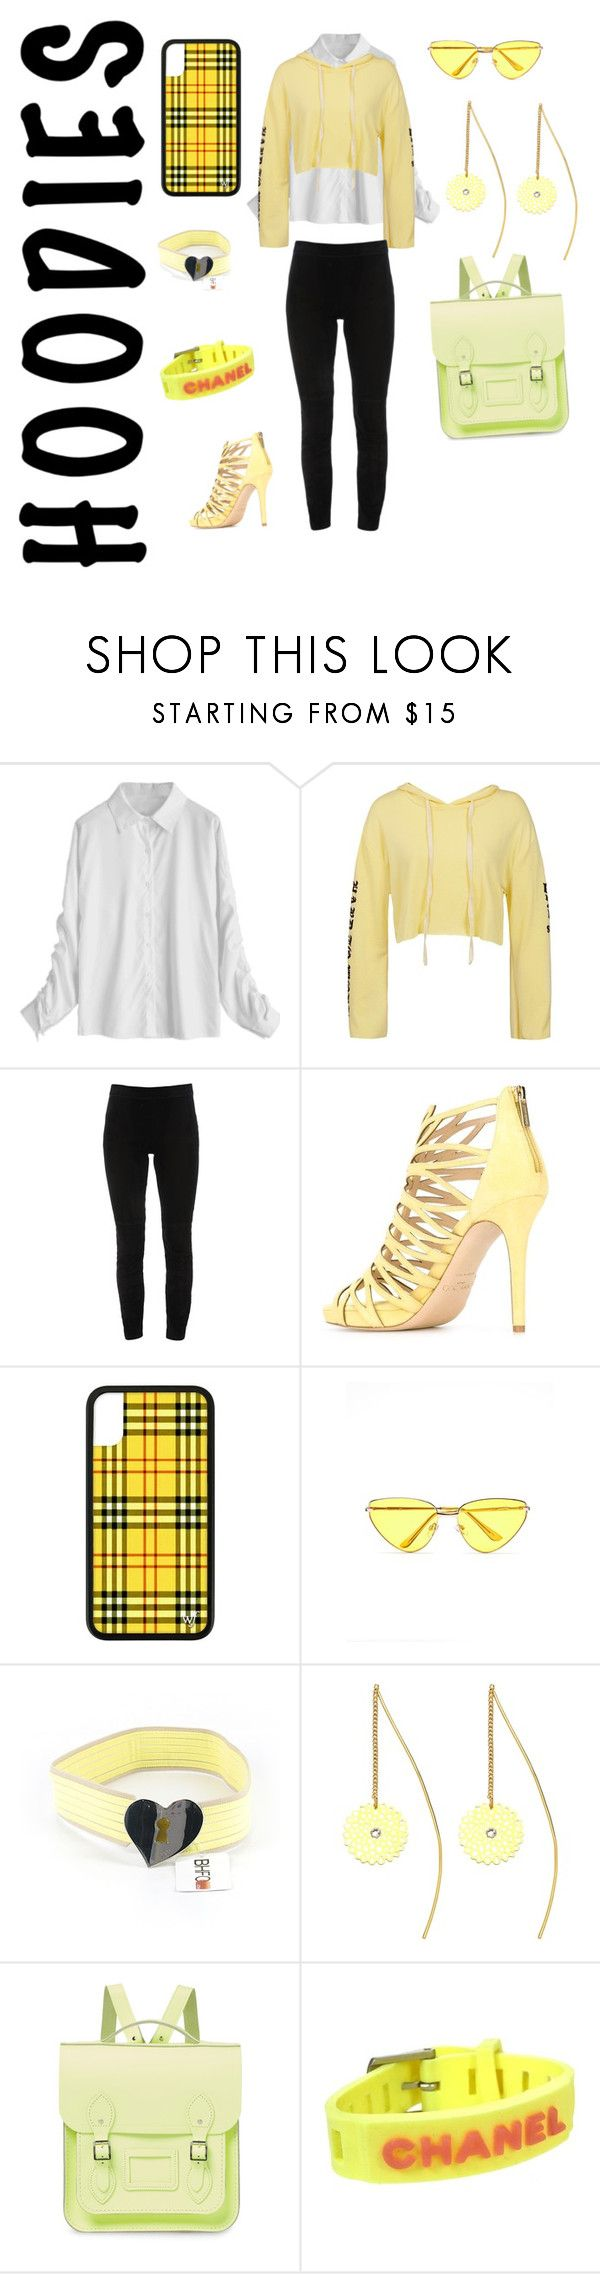 """""""Sunshine"""" by tedegirl on Polyvore featuring Sans Souci, Elie Tahari, Jimmy Choo, Express, Current/Elliott, Sterling Forever, The Cambridge Satchel Company, Chanel and Hoodies"""